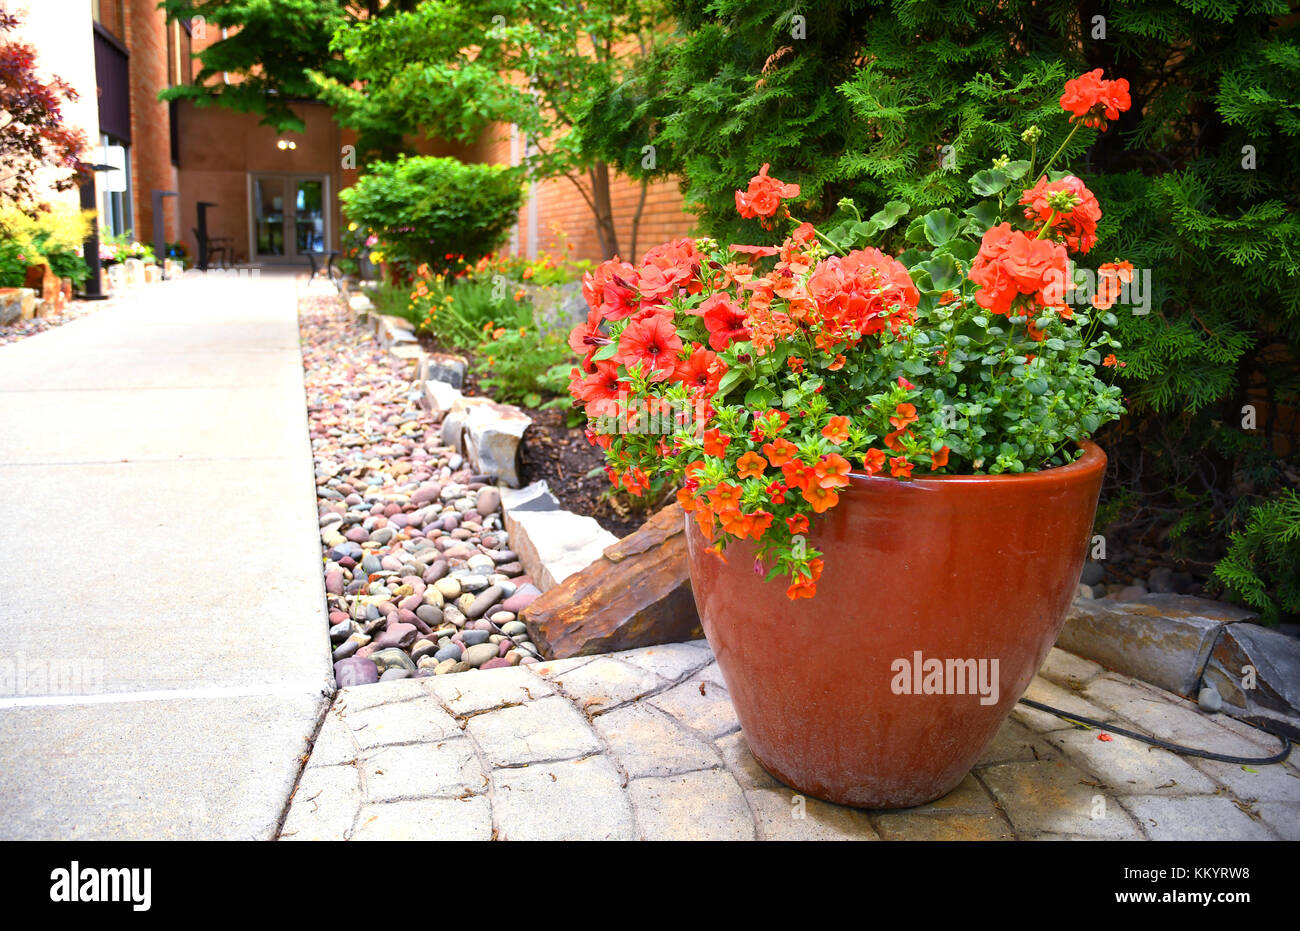 Flower pot full of petunias and geraniums in a corporate building garden - Stock Image